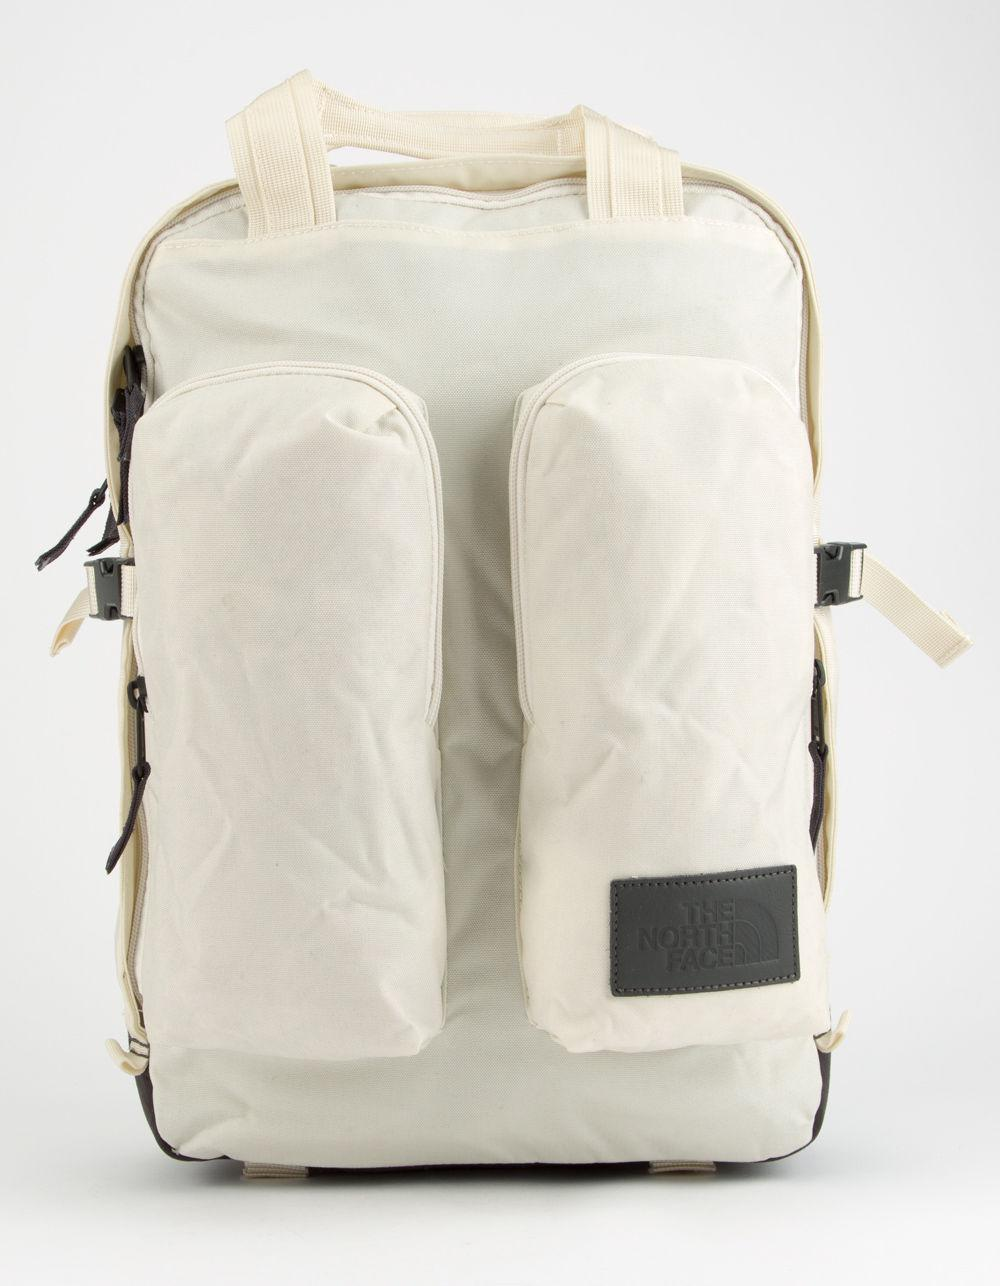 e9d195d9e011 Where To Buy Vintage Mini Backpack - Fairway Golf and Print